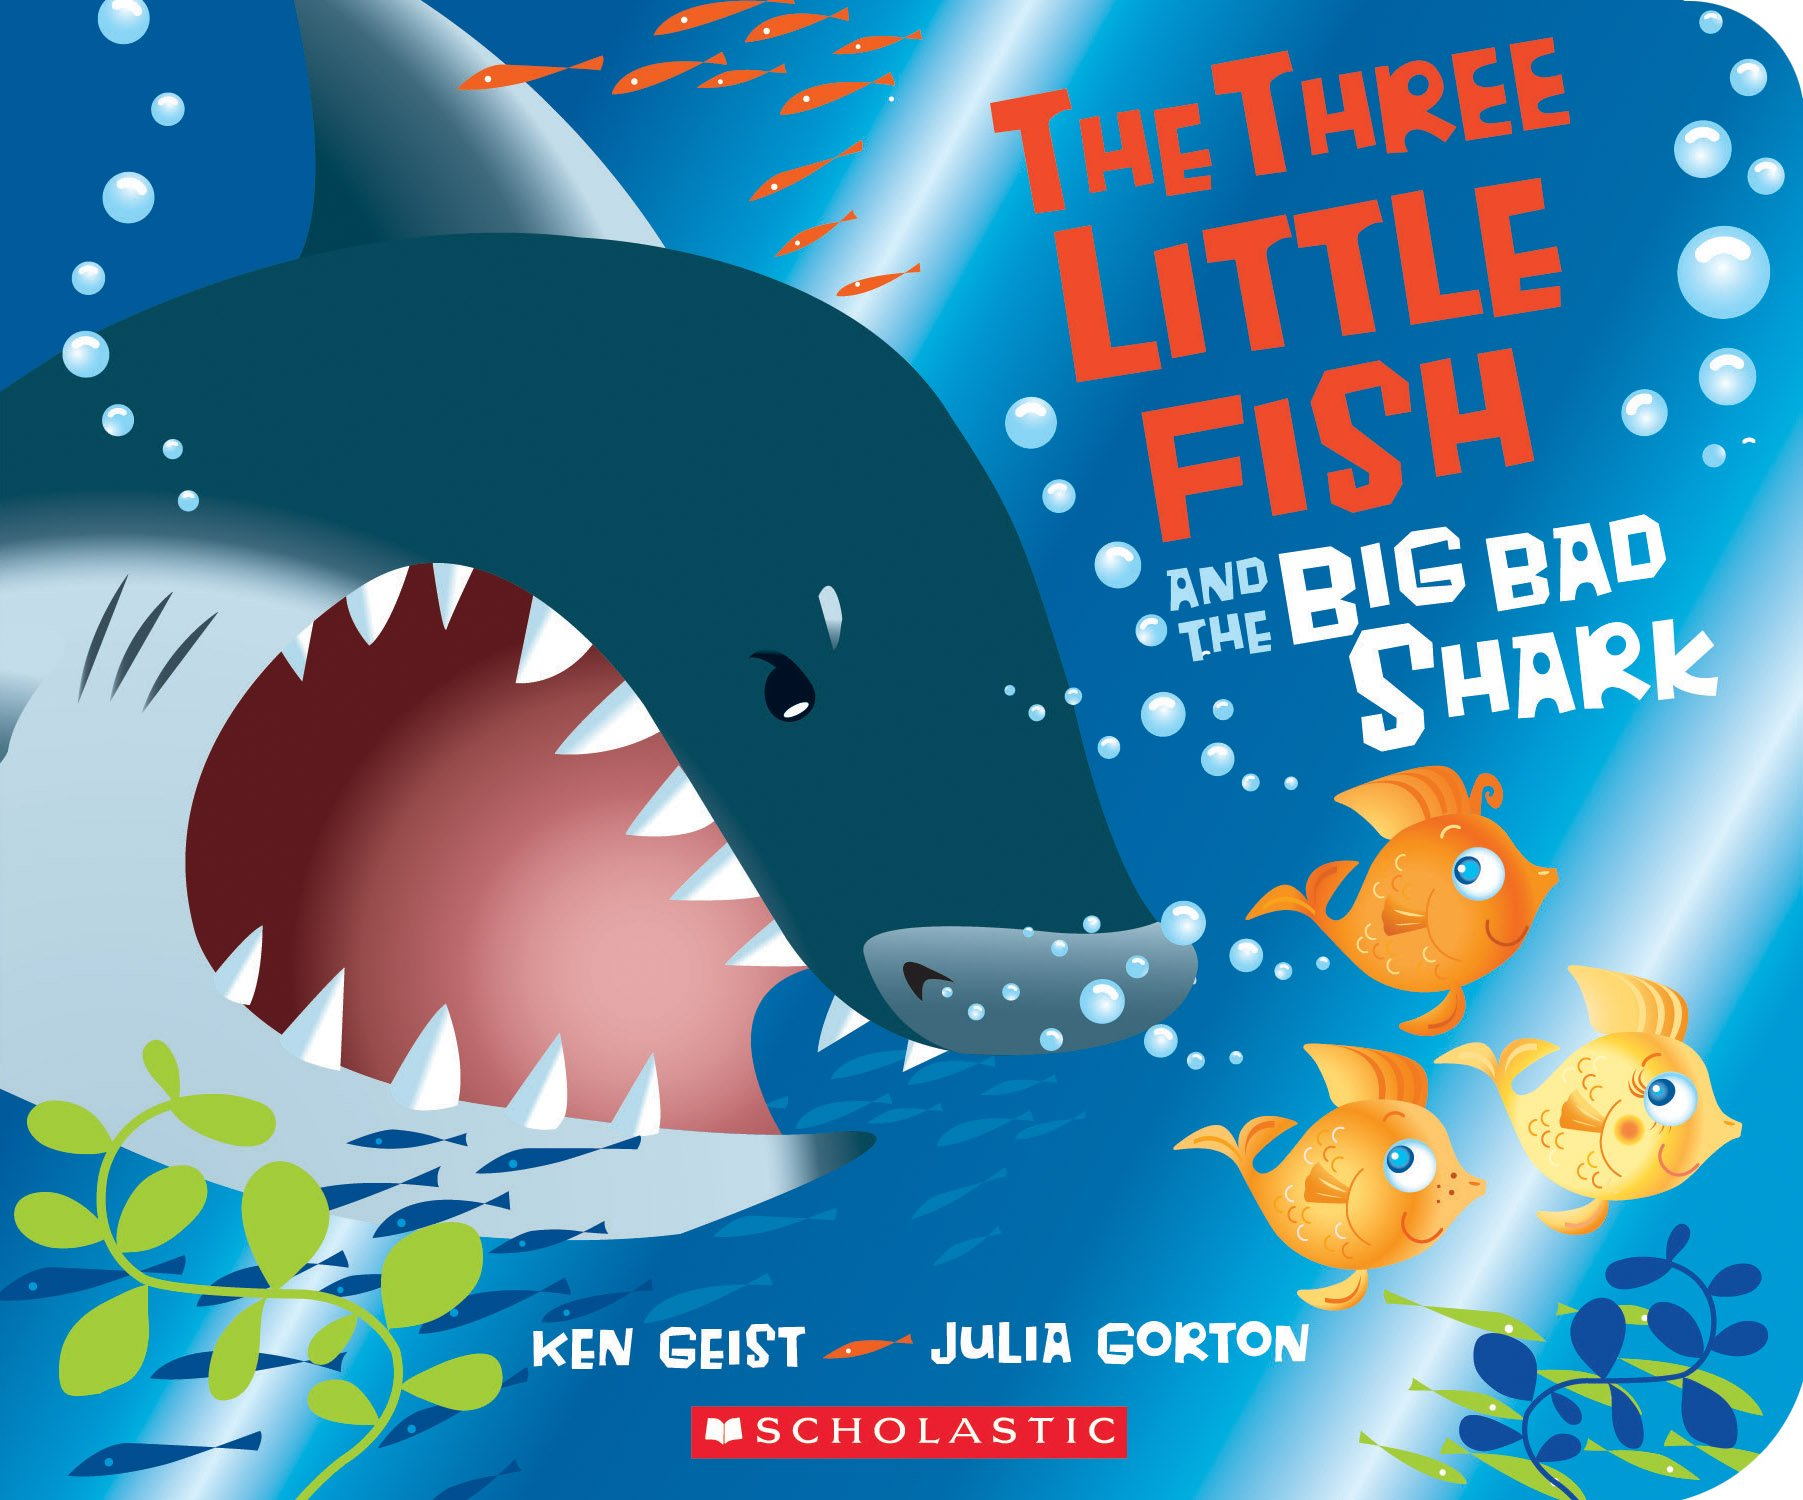 The three little fish and the big bad shark amazon ken geist the three little fish and the big bad shark amazon ken geist julia gorton 9780545944830 books publicscrutiny Image collections